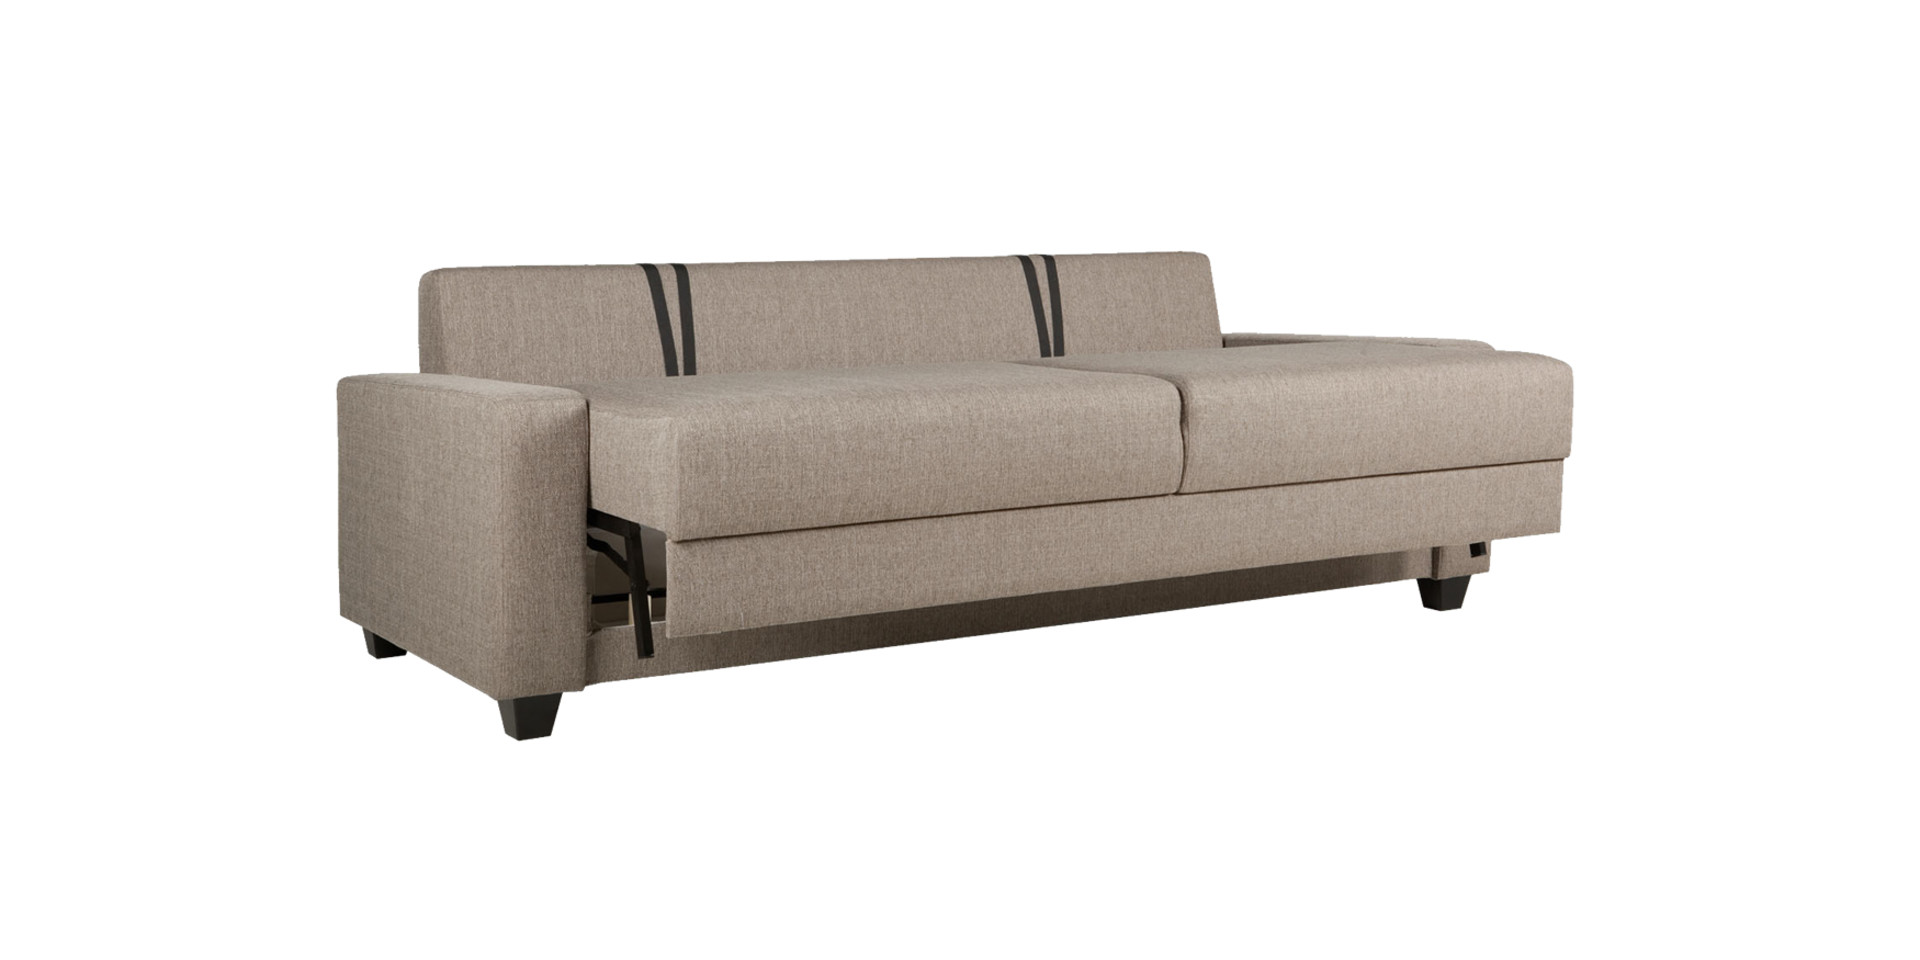 sits-bari-canape-convertible-sofa_bed_cedros3_light_brown_4